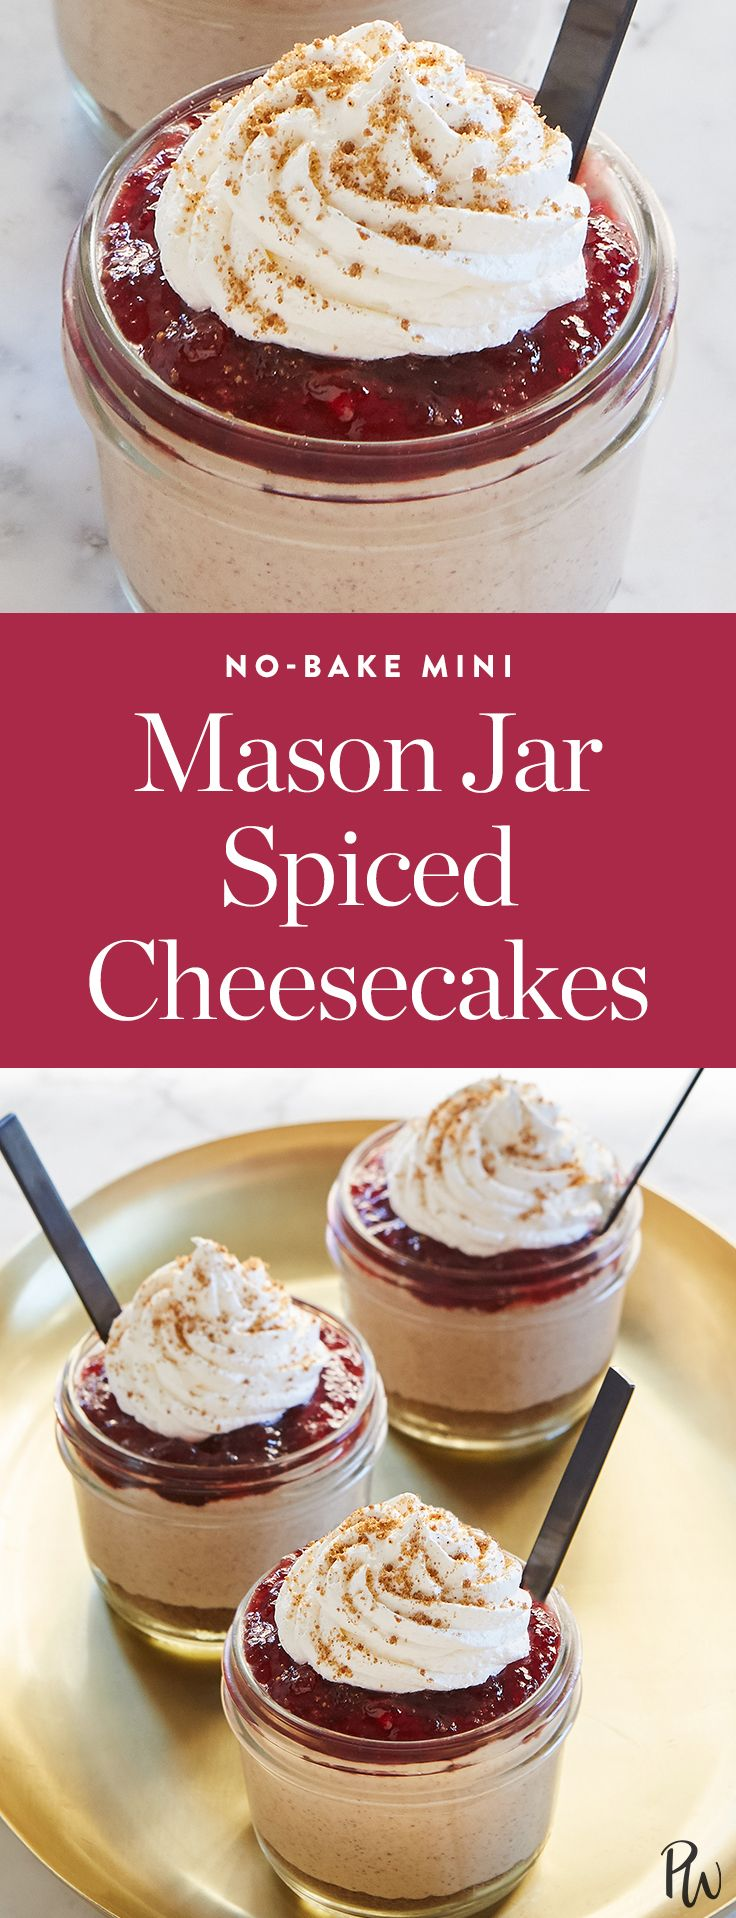 No-Bake Mini Mason Jar Spiced Cheesecakes. On the list of things we love: eating cake. On the list of things we hate: baking cake. Problem solved with these adorable no-bake mini mason jar spiced cheesecakes. Thanks to store-bought red currant jelly, these little guys take ten minutes to whip up and then magically come together in the fridge. (Plus, they're festive AF.)